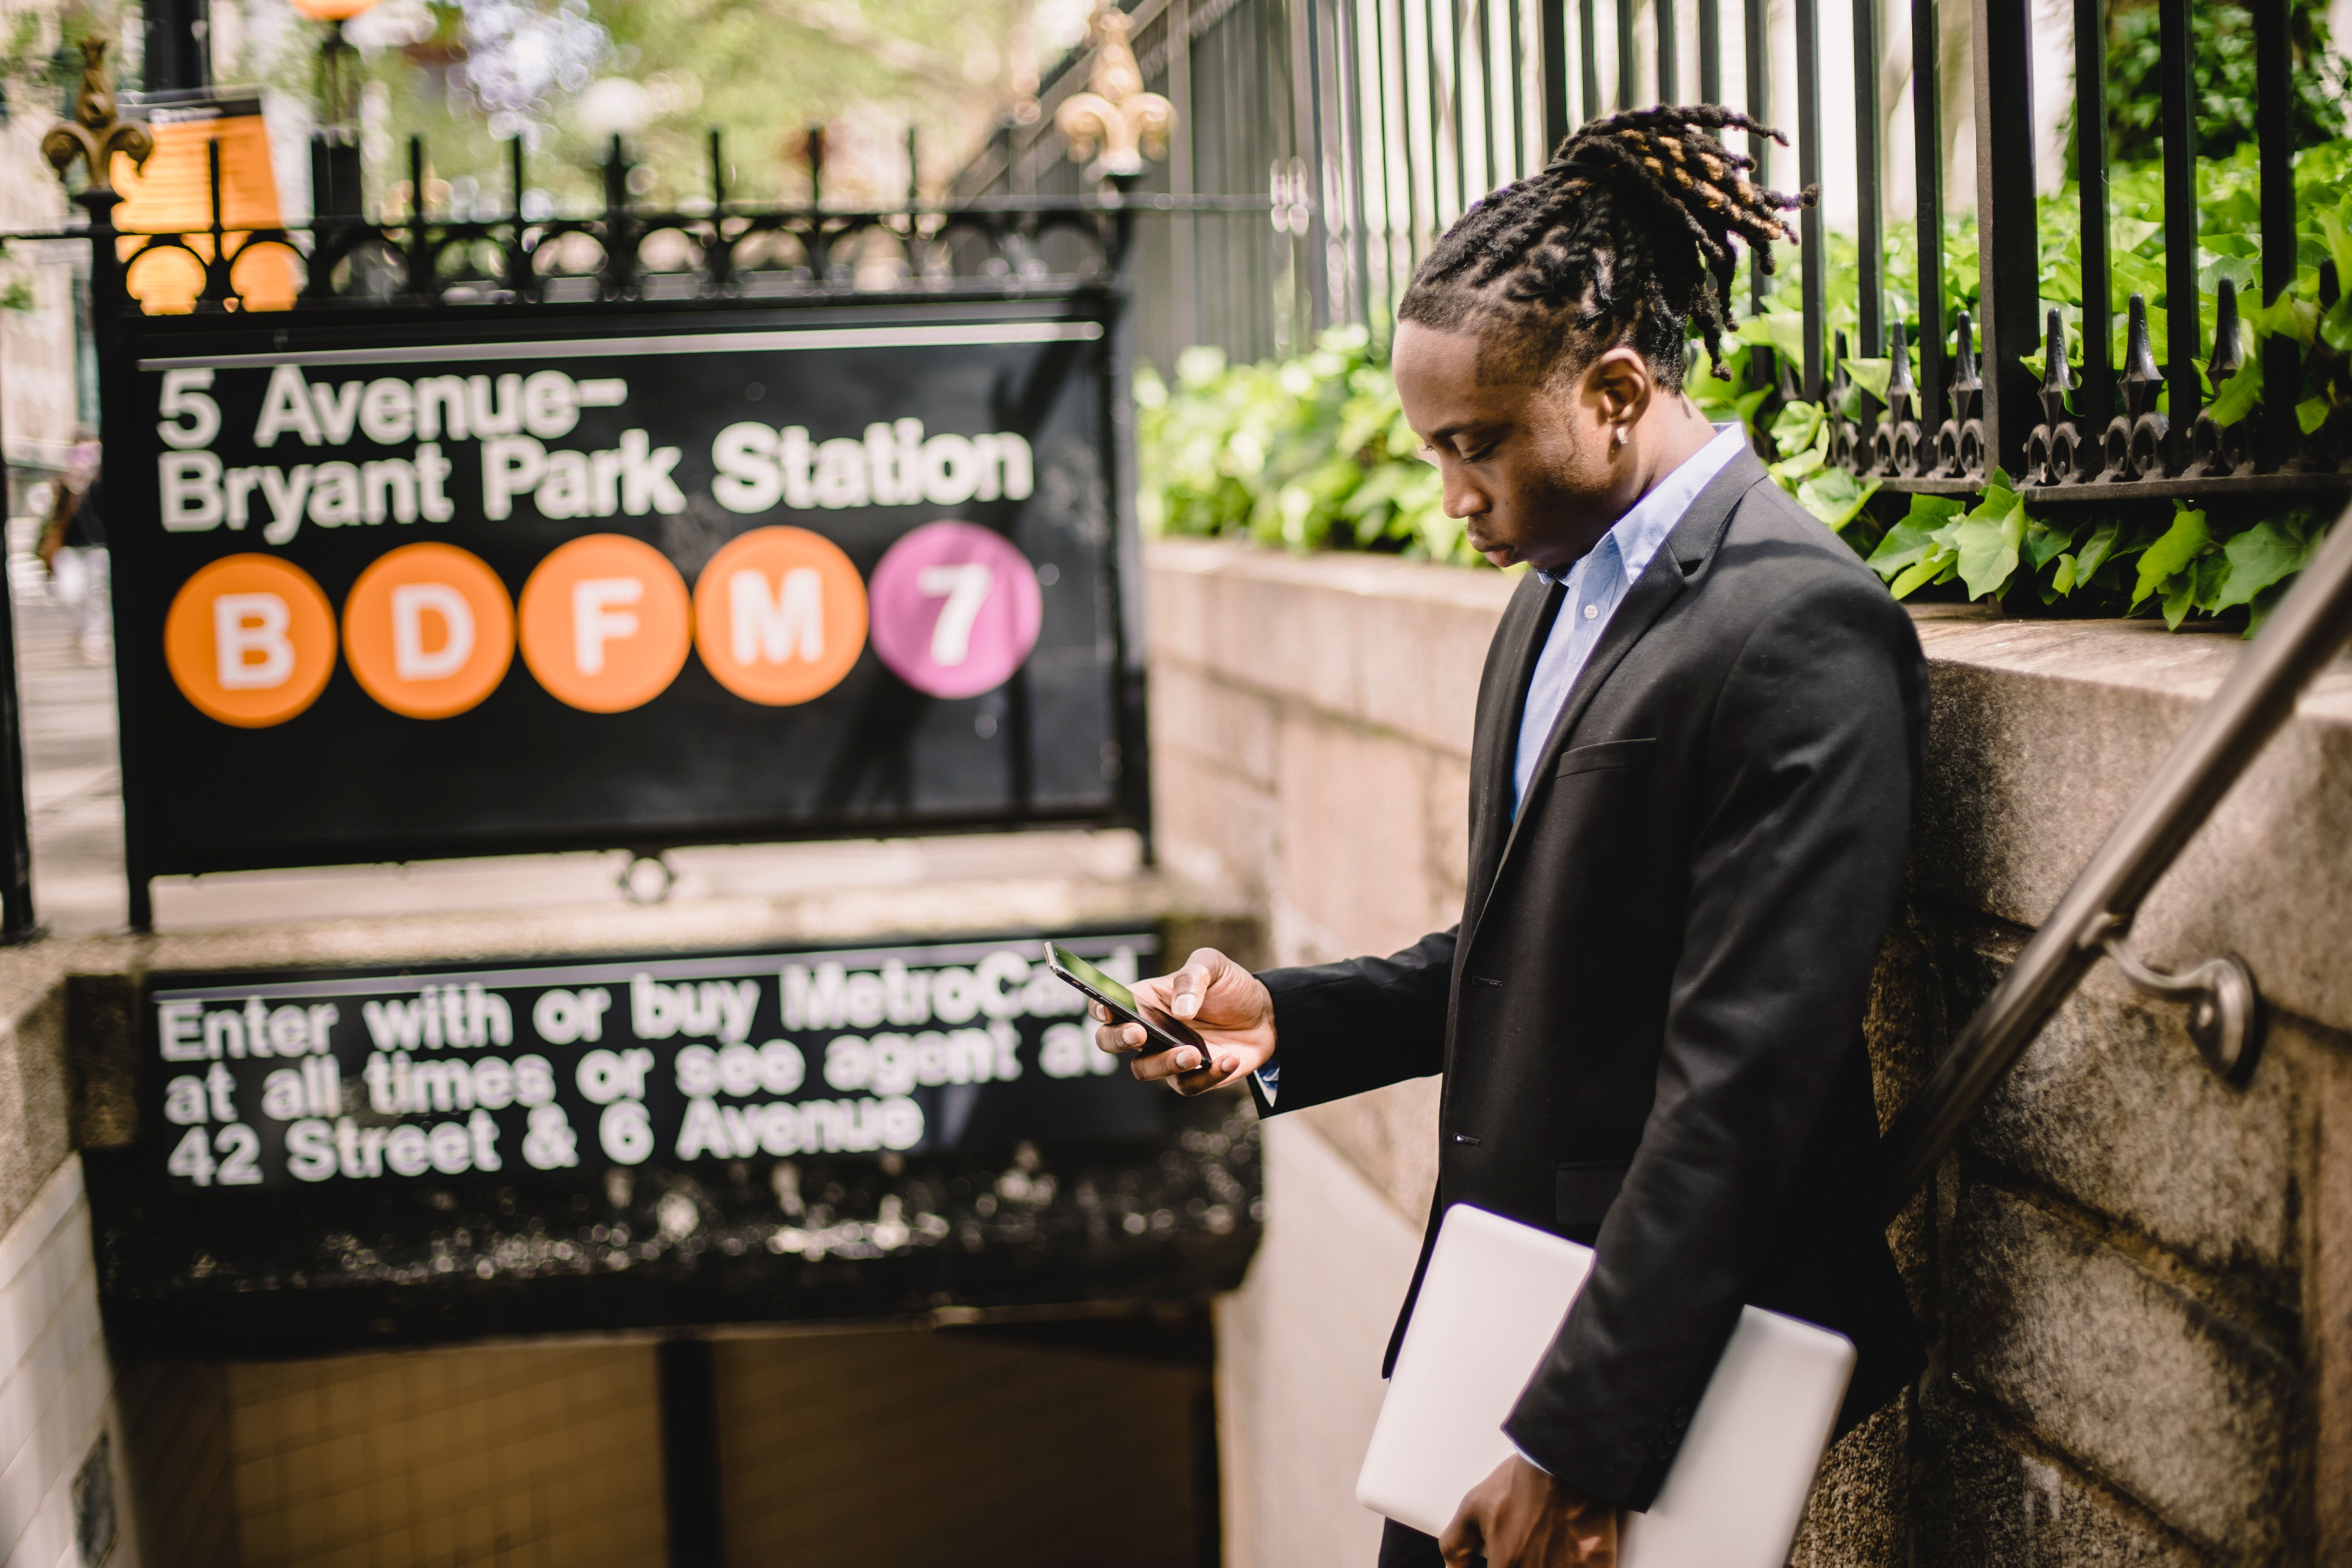 A man in a suit stands outside the entrance to the 5th Avenue Bryant Park Metro station in New York City, holding a closed laptop at his side and in his left hand, while he browses his smartphone with his right hand.